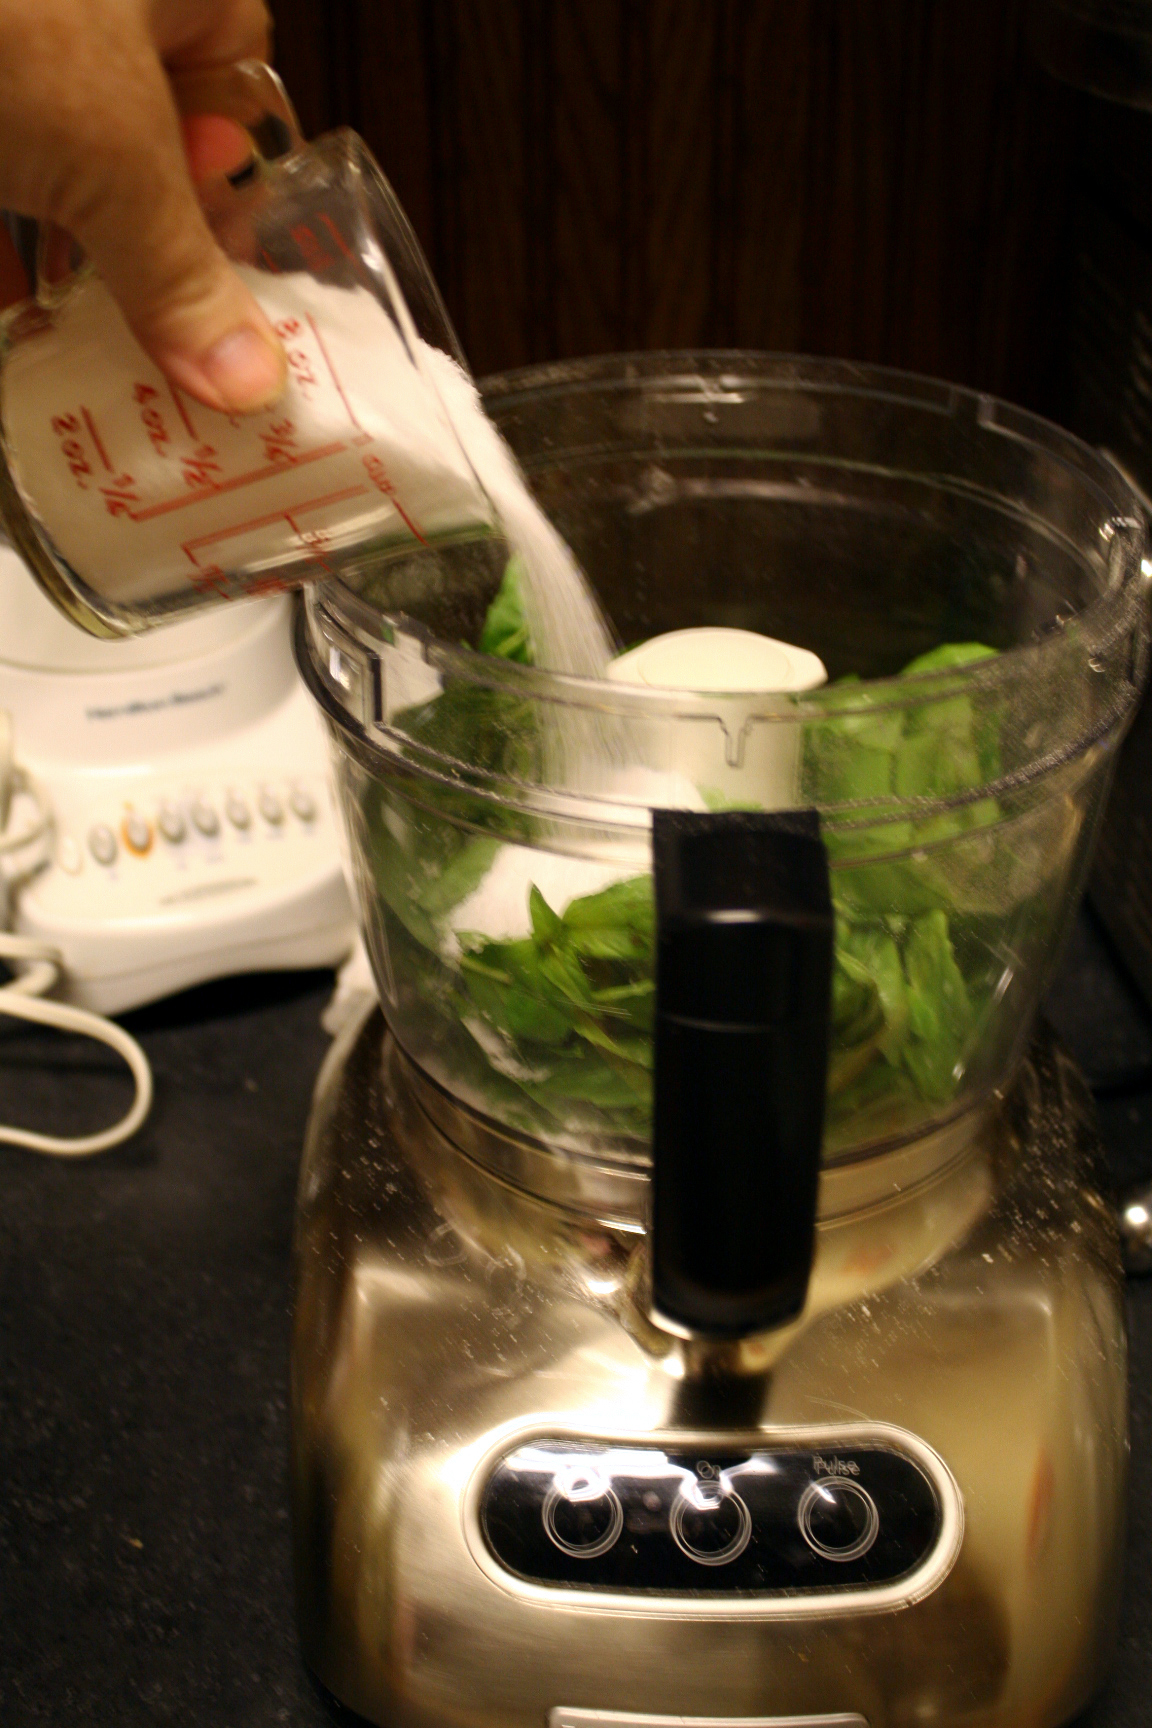 Pouring Salt into Food Processor